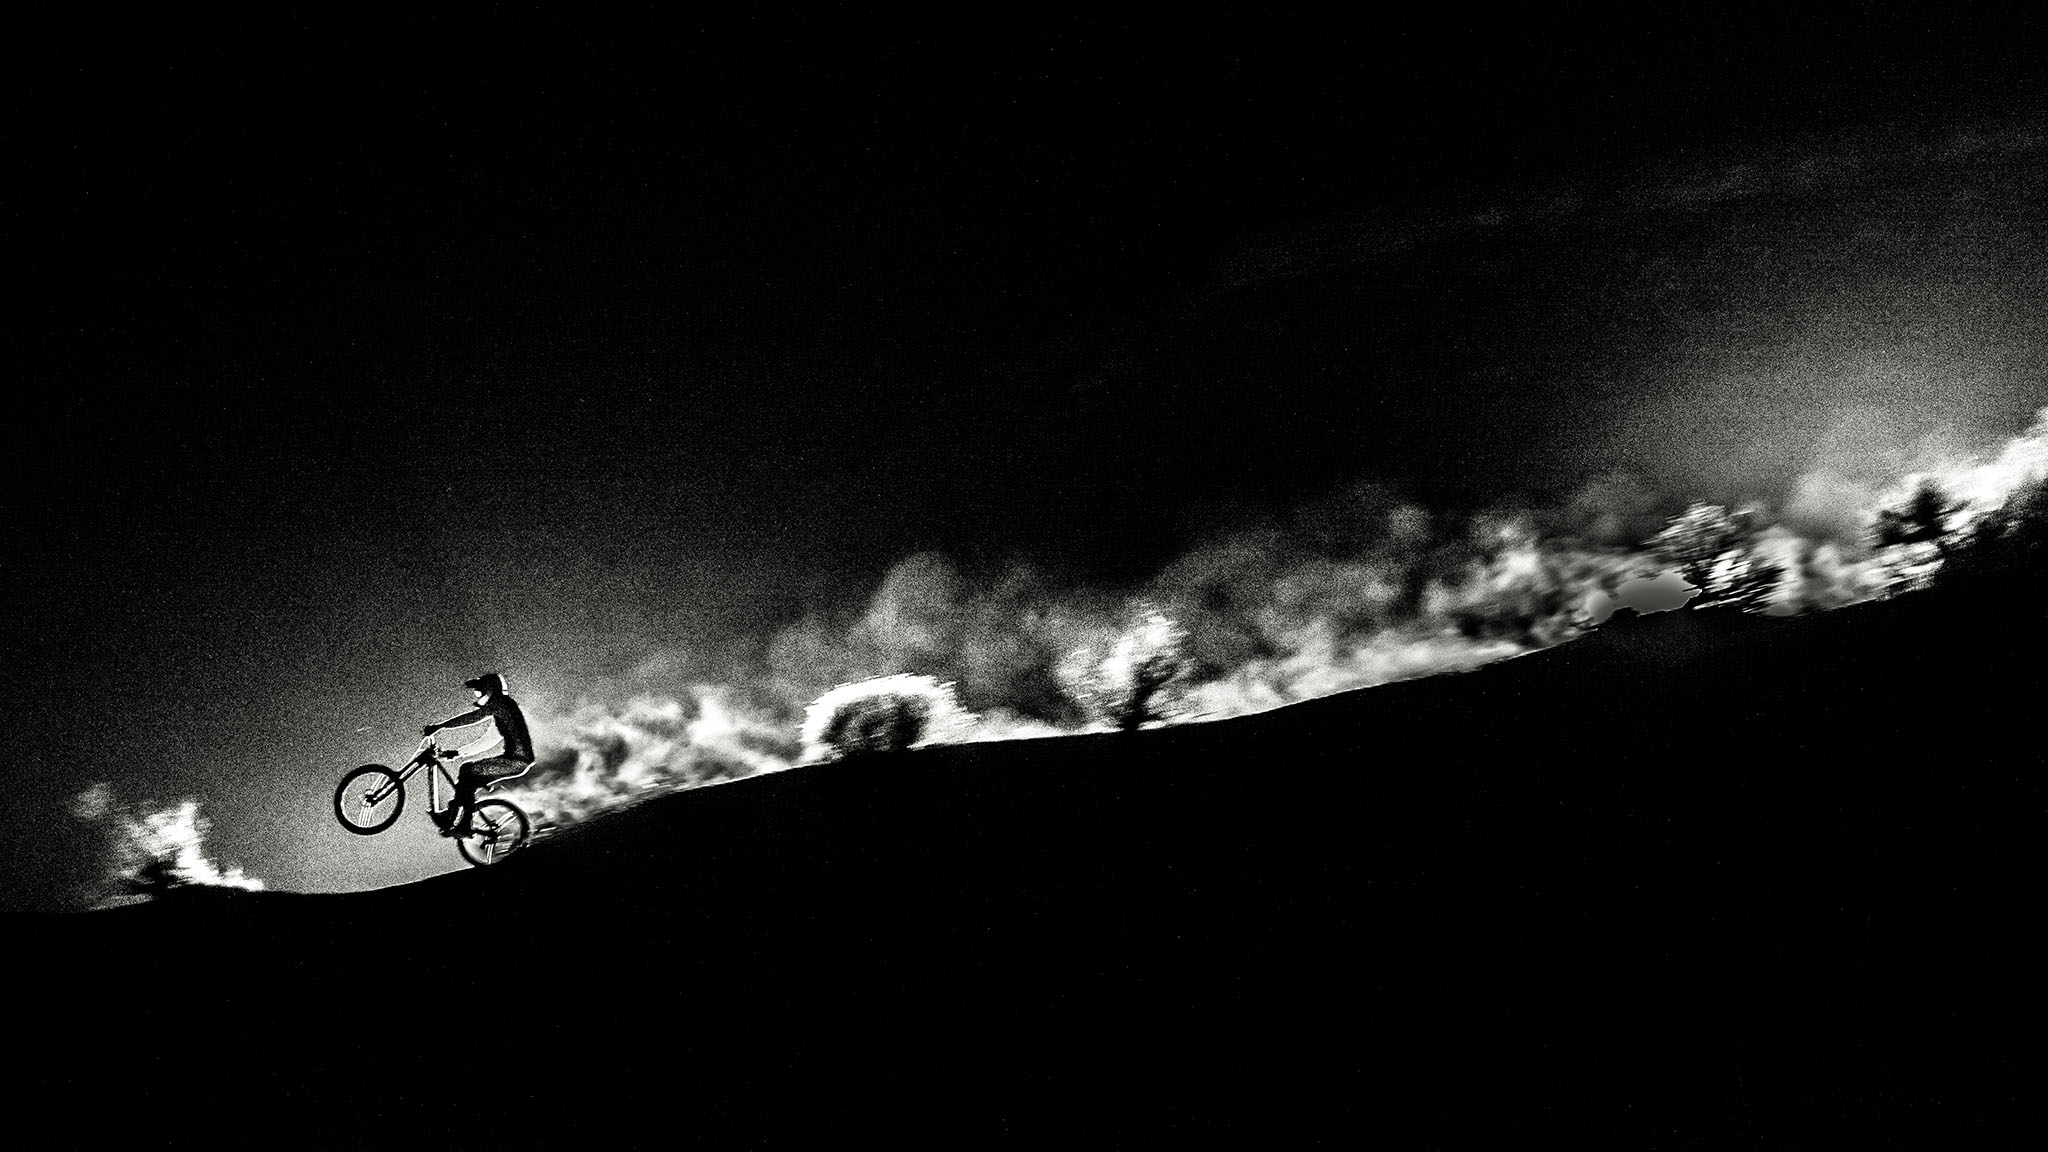 The best action sports photography, in black and white